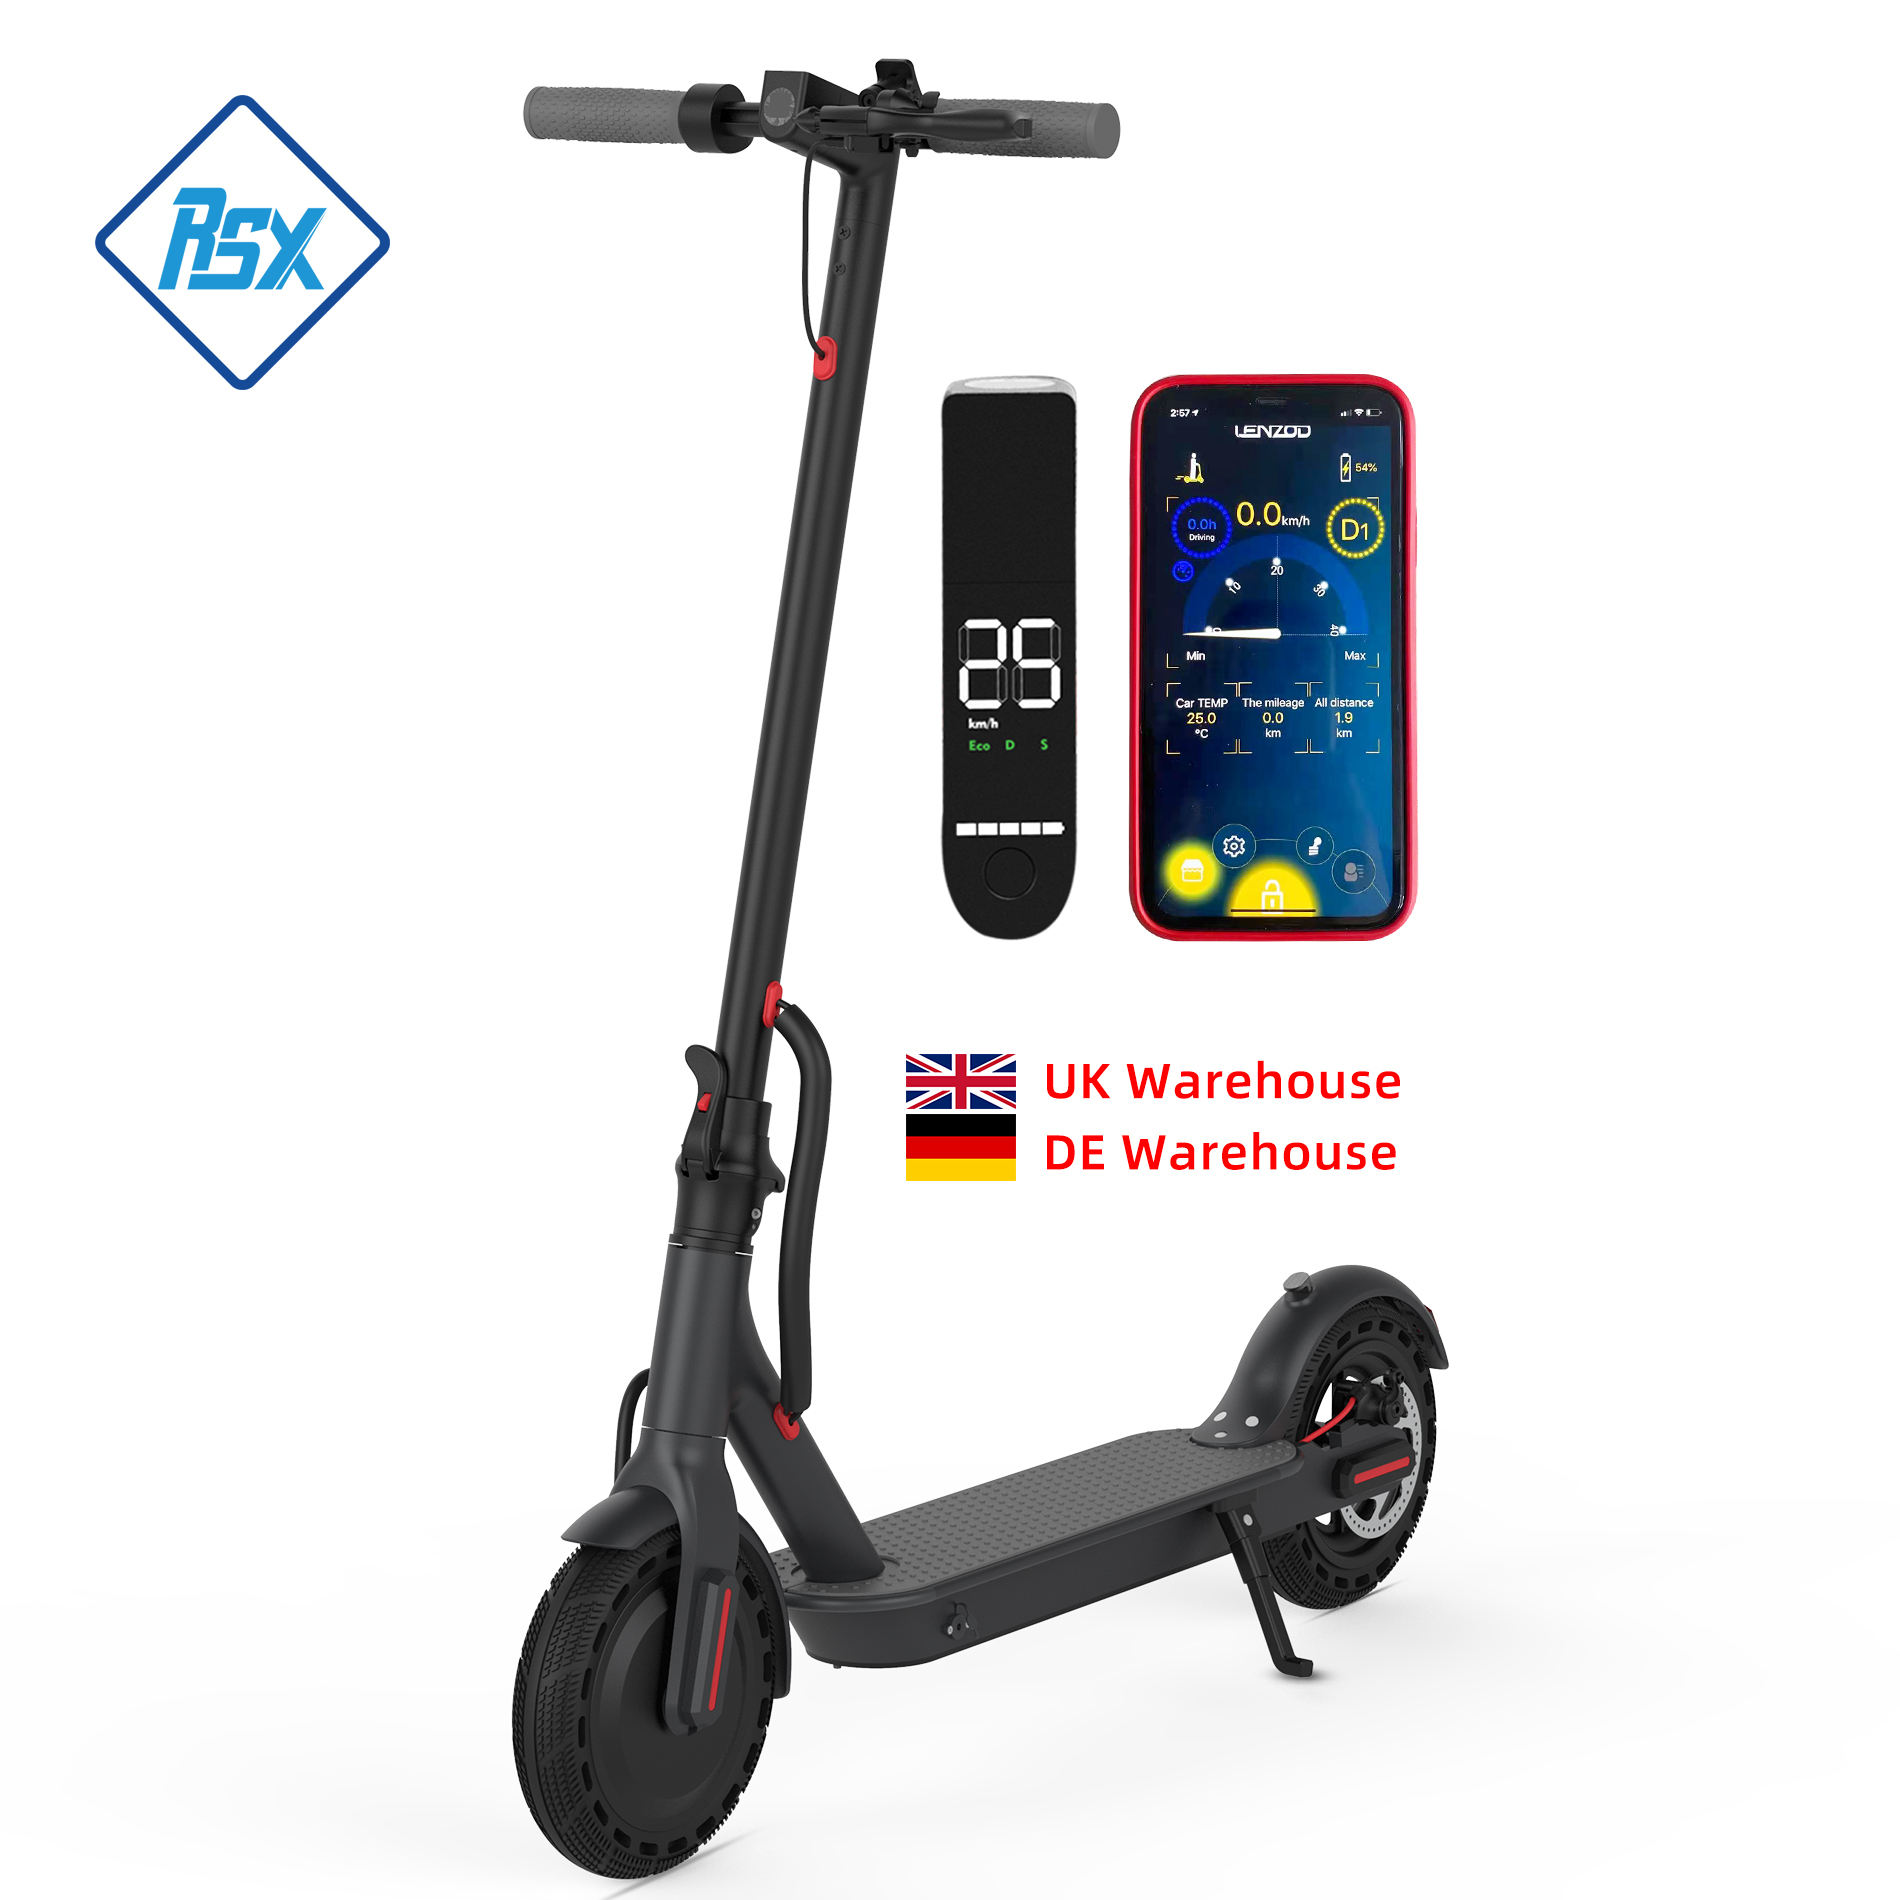 DDP Free Duty europe Germany warehouse 36V 10Ah 350w Skateboard Foldable motorcycle E scooter adult Electric Scooter